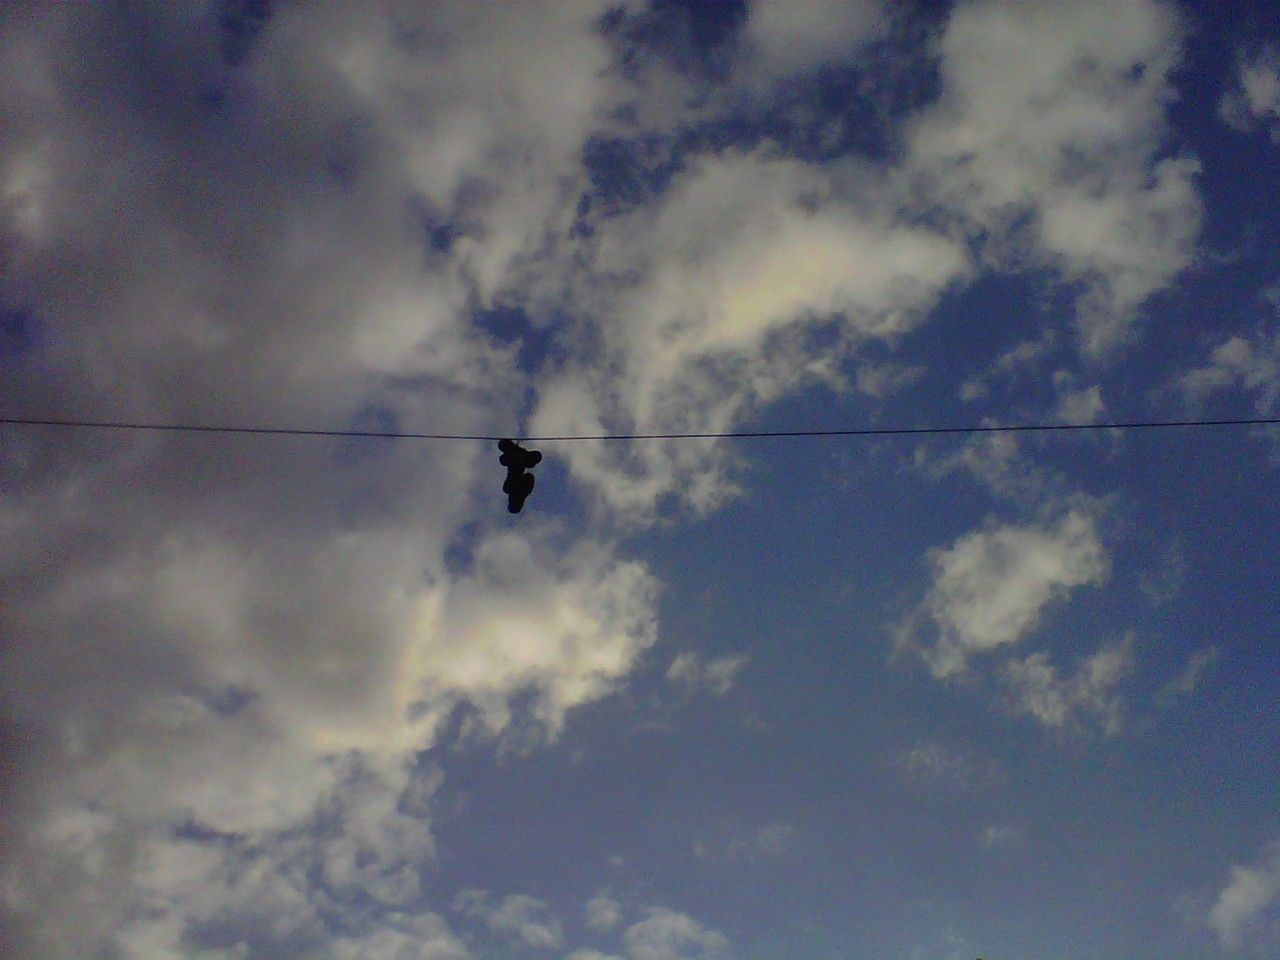 Colgar los tennis (to hang your shoes at public wire) is a way of ...